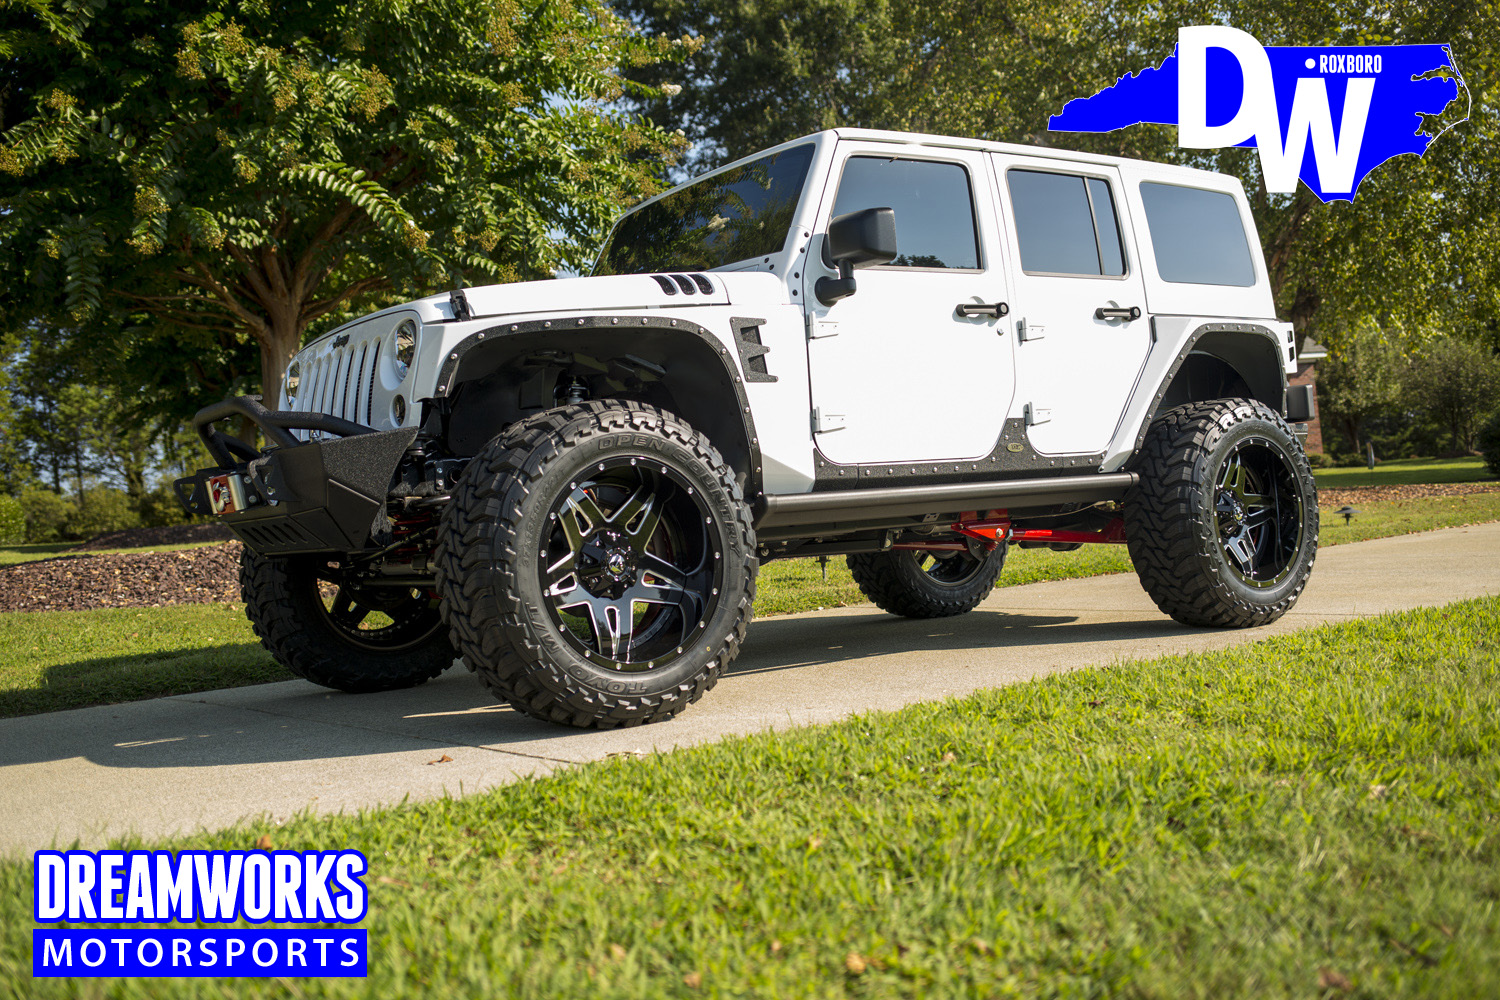 Gerald-Wallas-White-Jeep-by-Dreamworksmotorsports-10.jpg